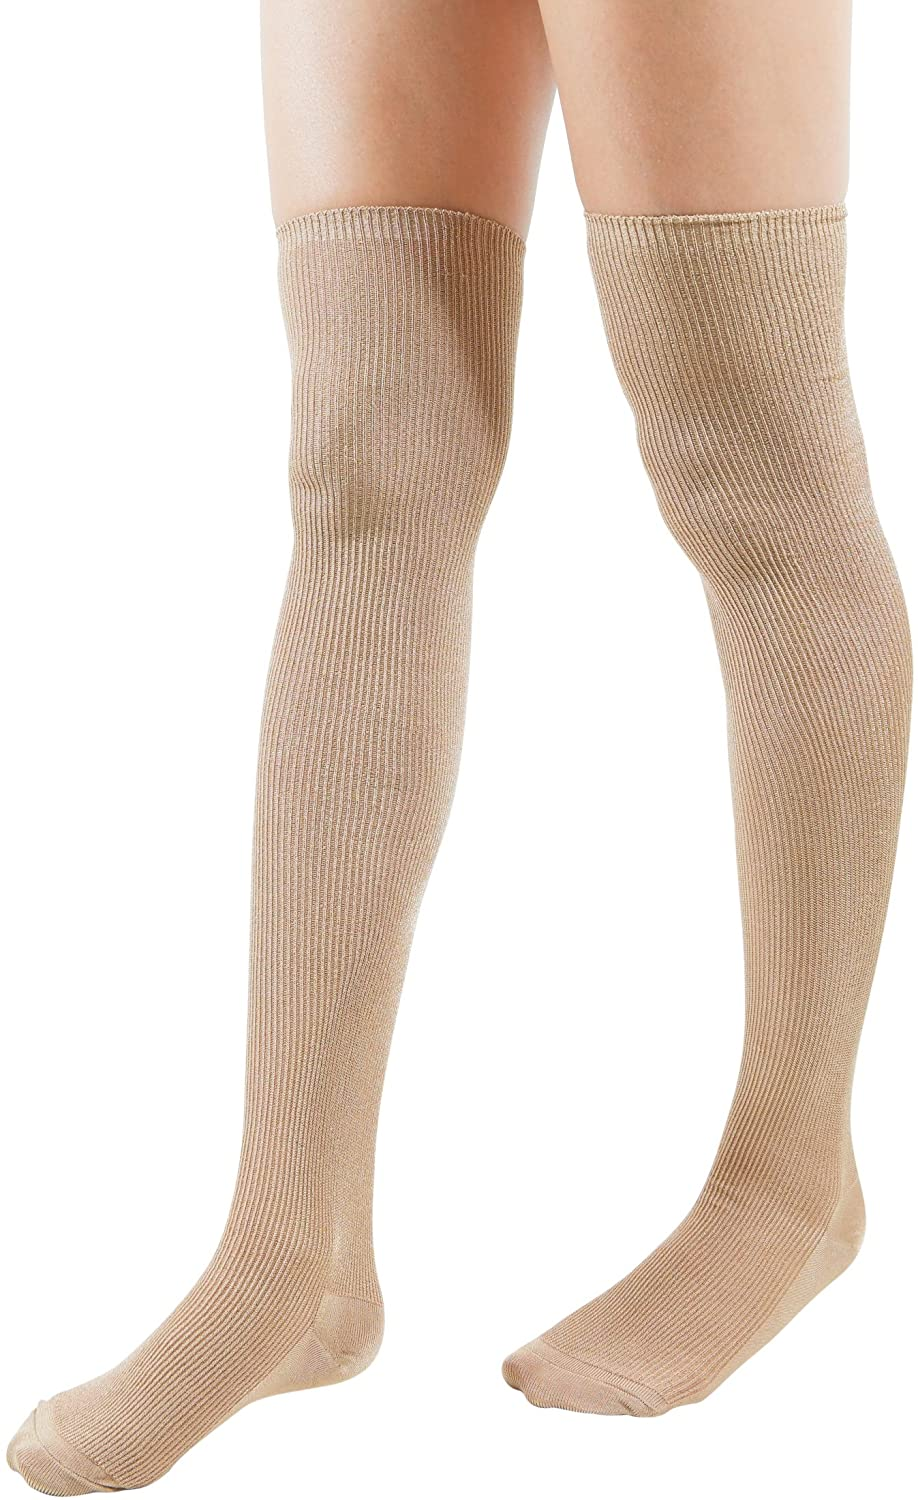 Shiny Over The Knee Socks Ribbed Fashion Design Cotton Vivid Color